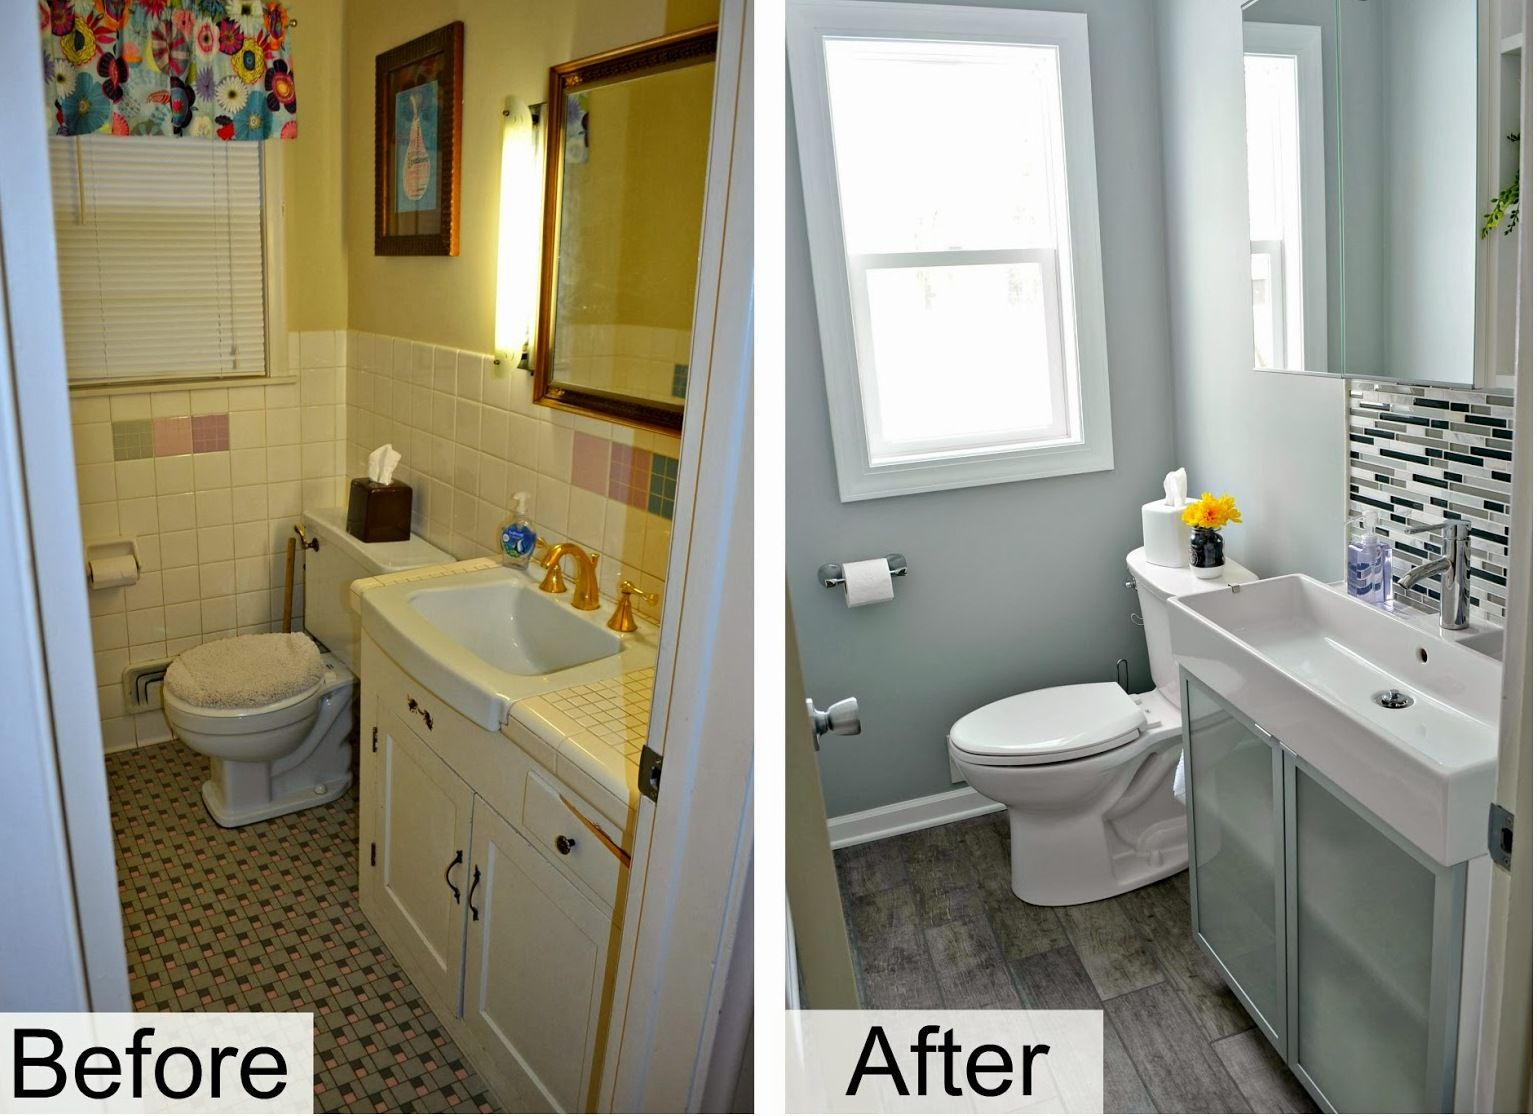 Bathroom Remodel Ideas Before And After Diy Bathroom Remodel Ideas For Average People  Diy Bathroom